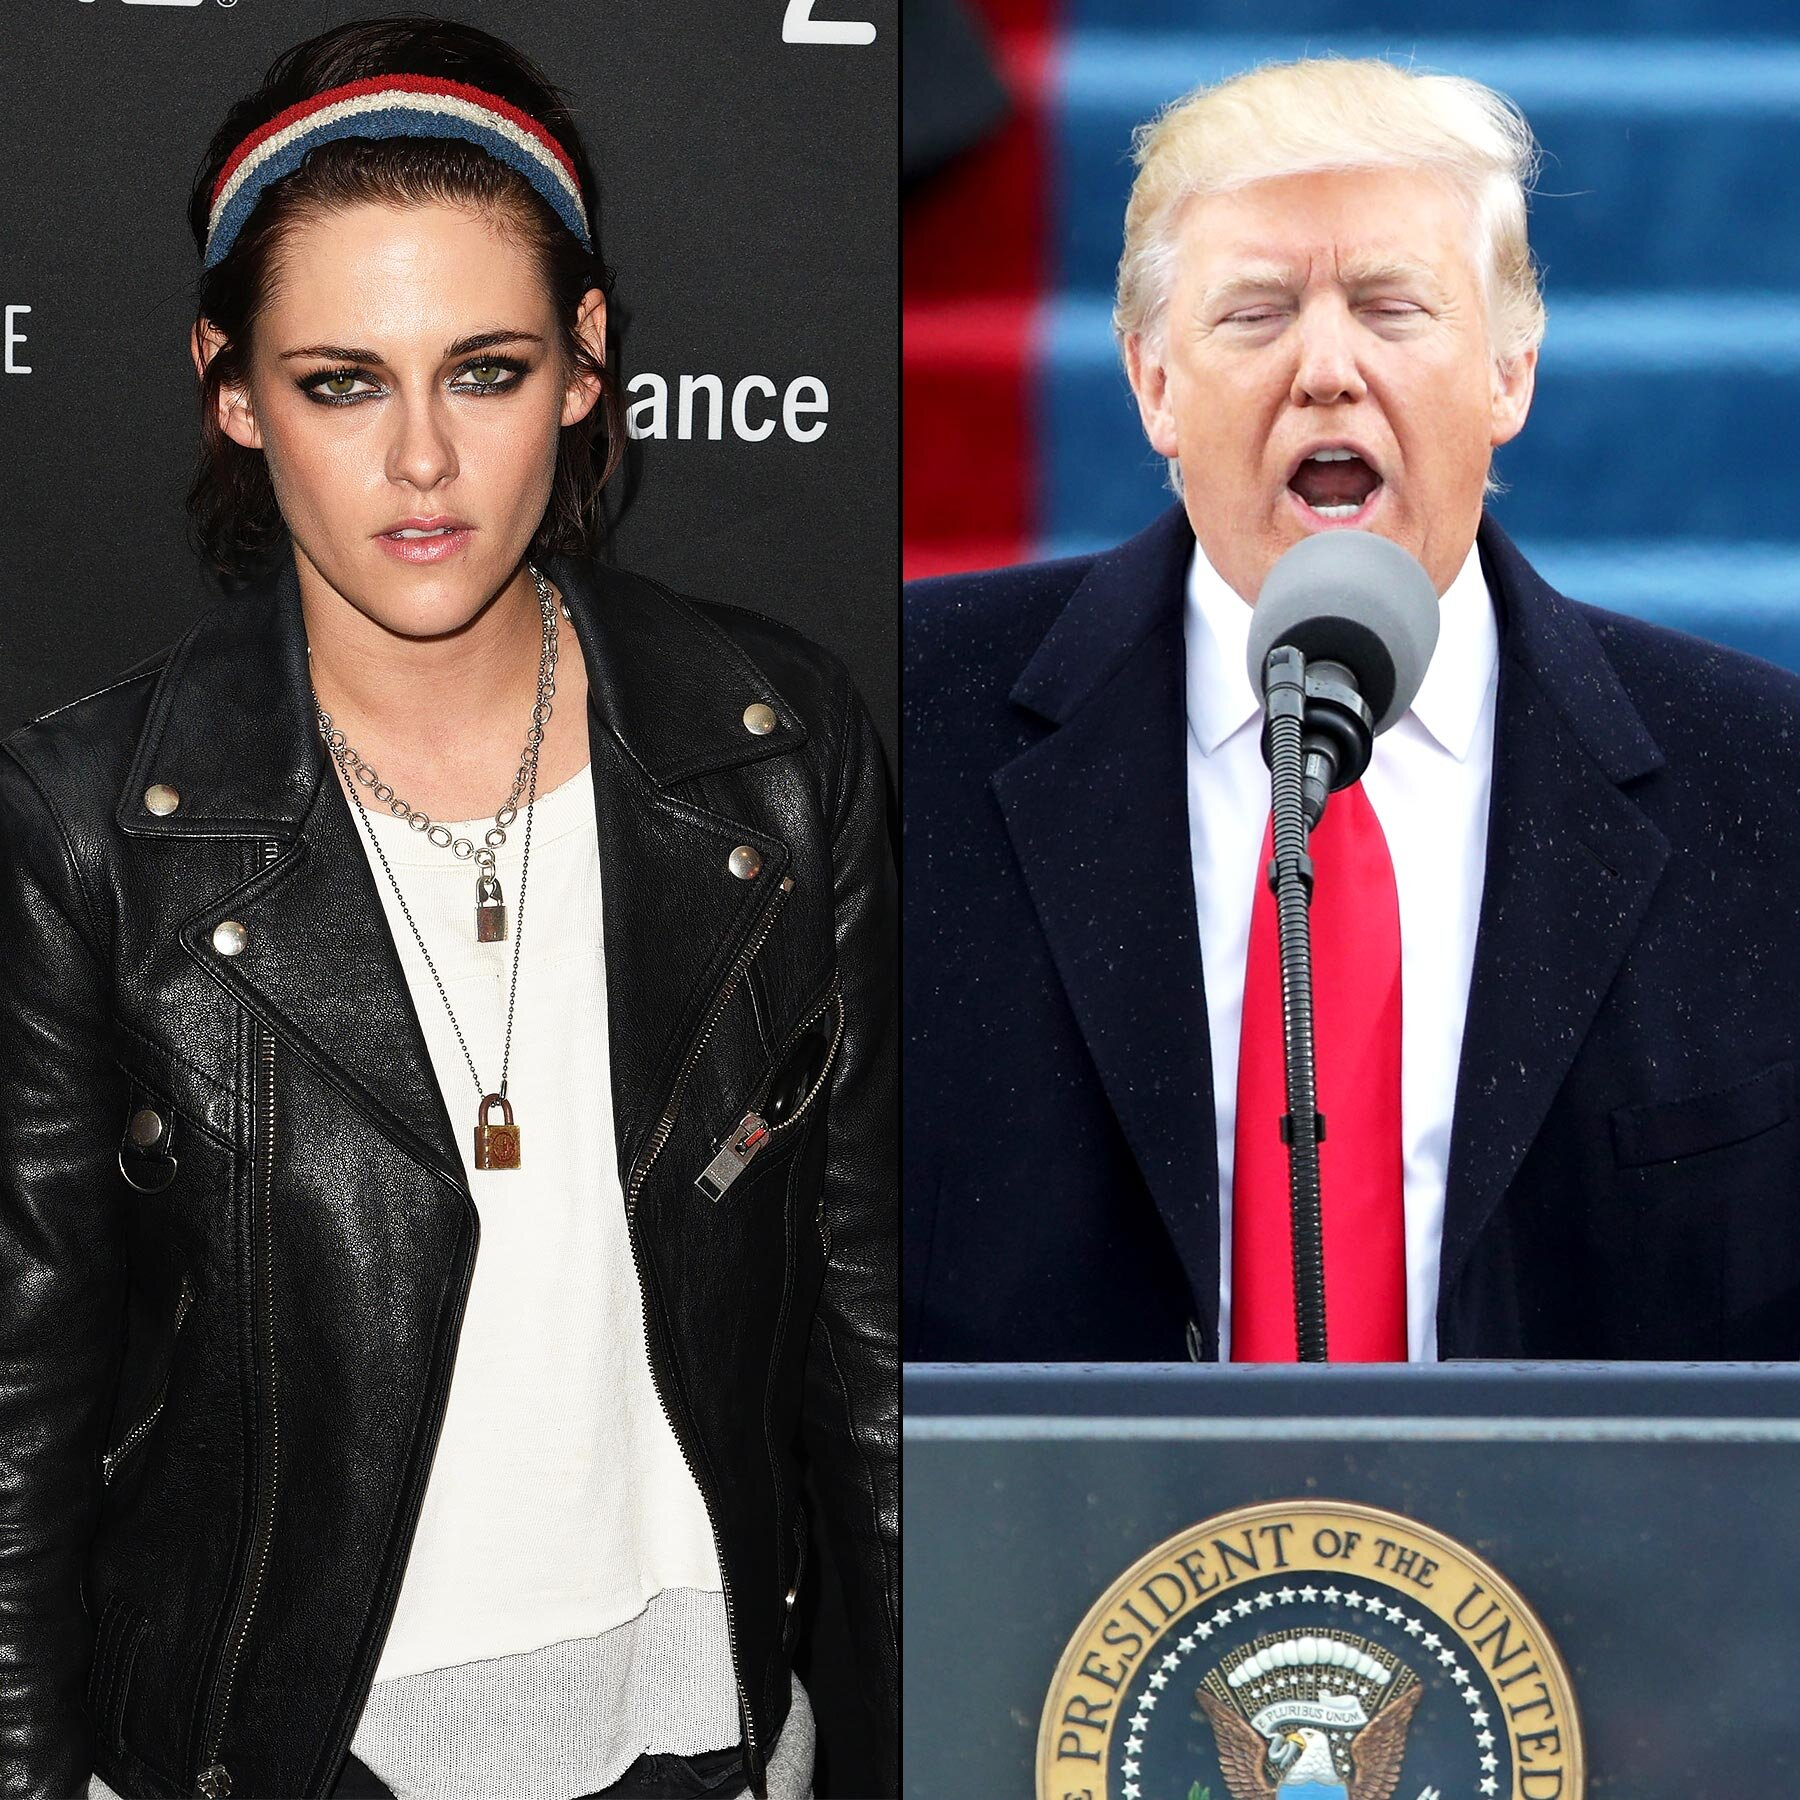 Donald Trump Kristen Stewart Tweets Read Them Here Ew Com